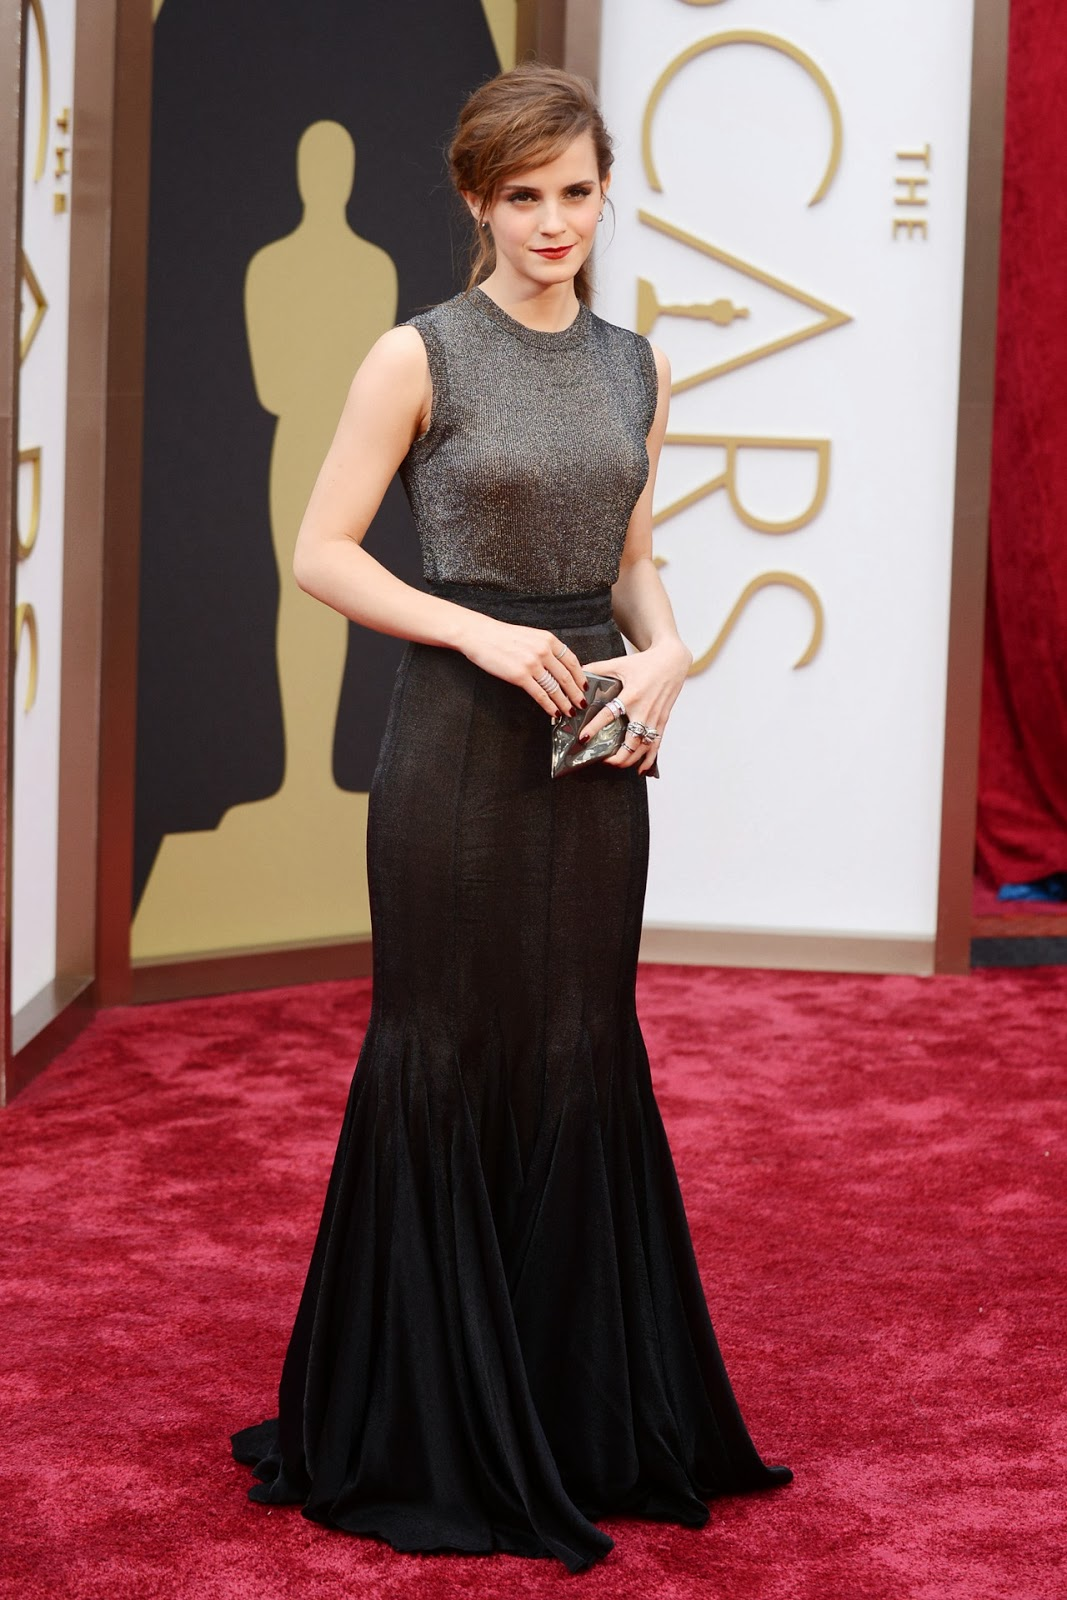 Emma Watson in Vera Wang at the Oscars